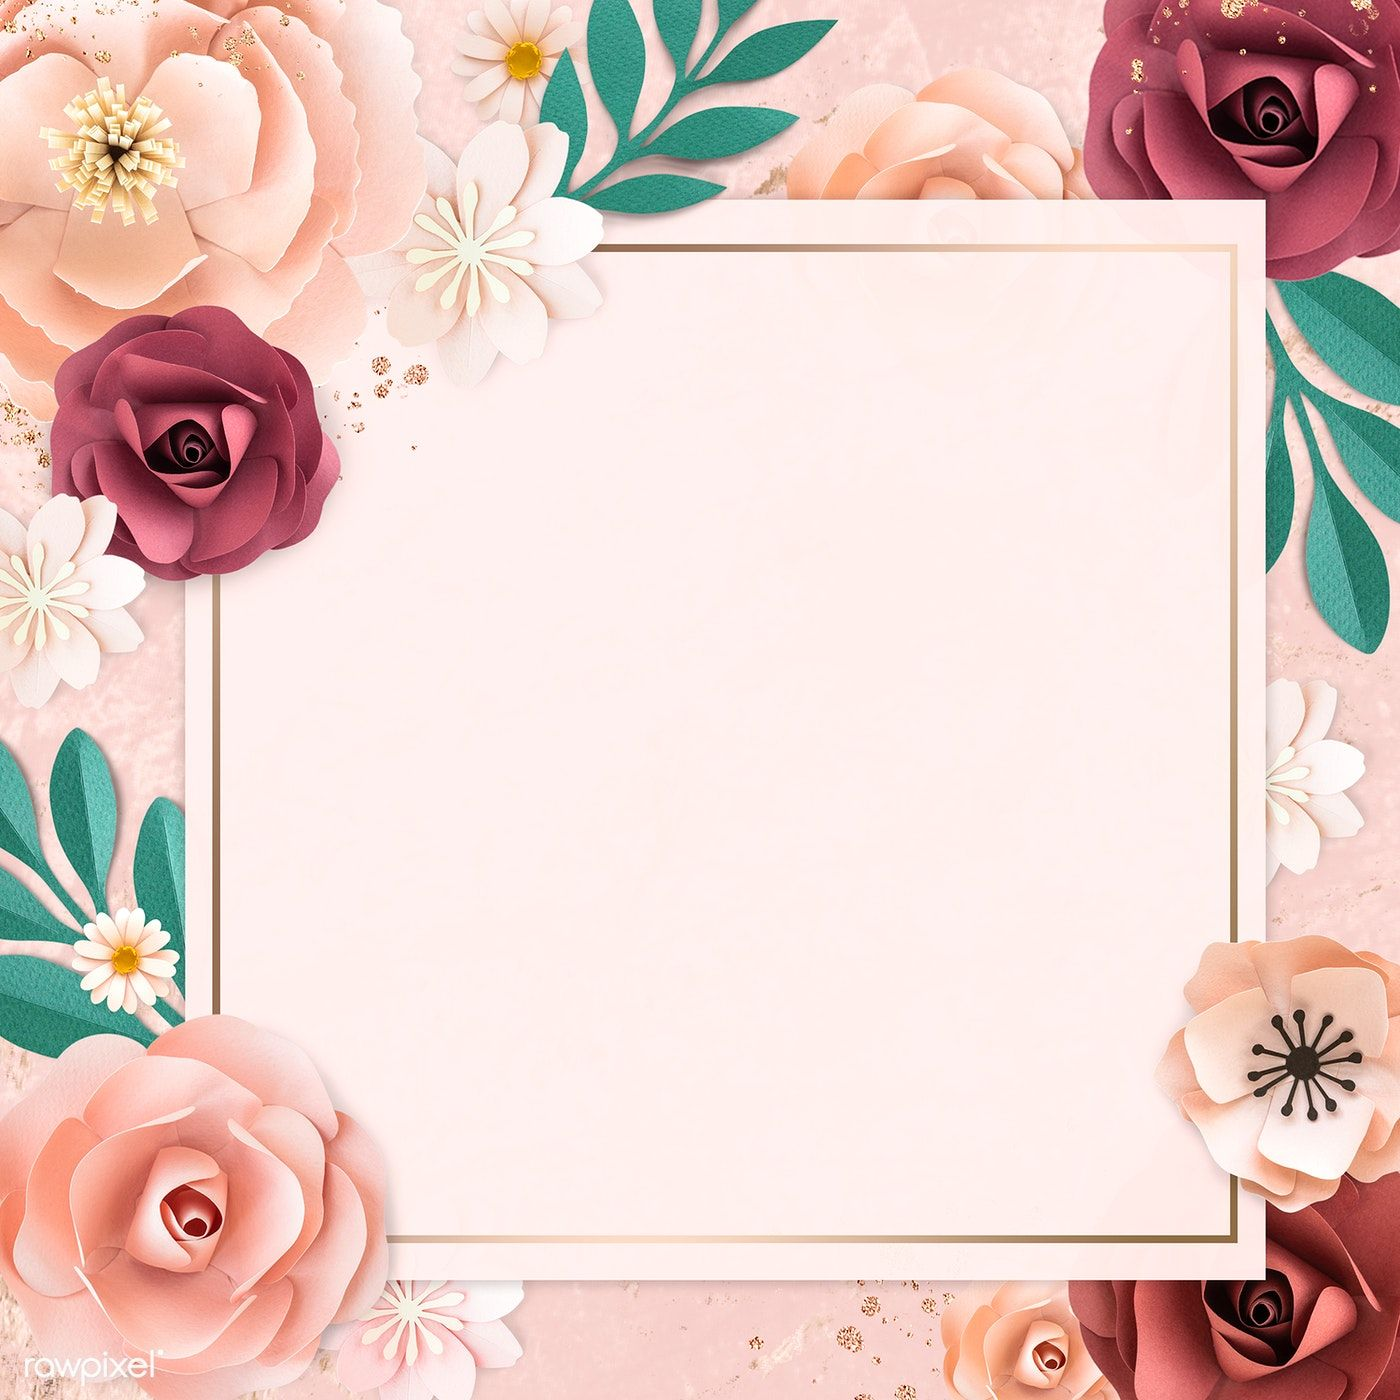 Download Premium Psd Of Square Paper Craft Flower Frame Template Flower Frame Frame Template Flower Background Wallpaper